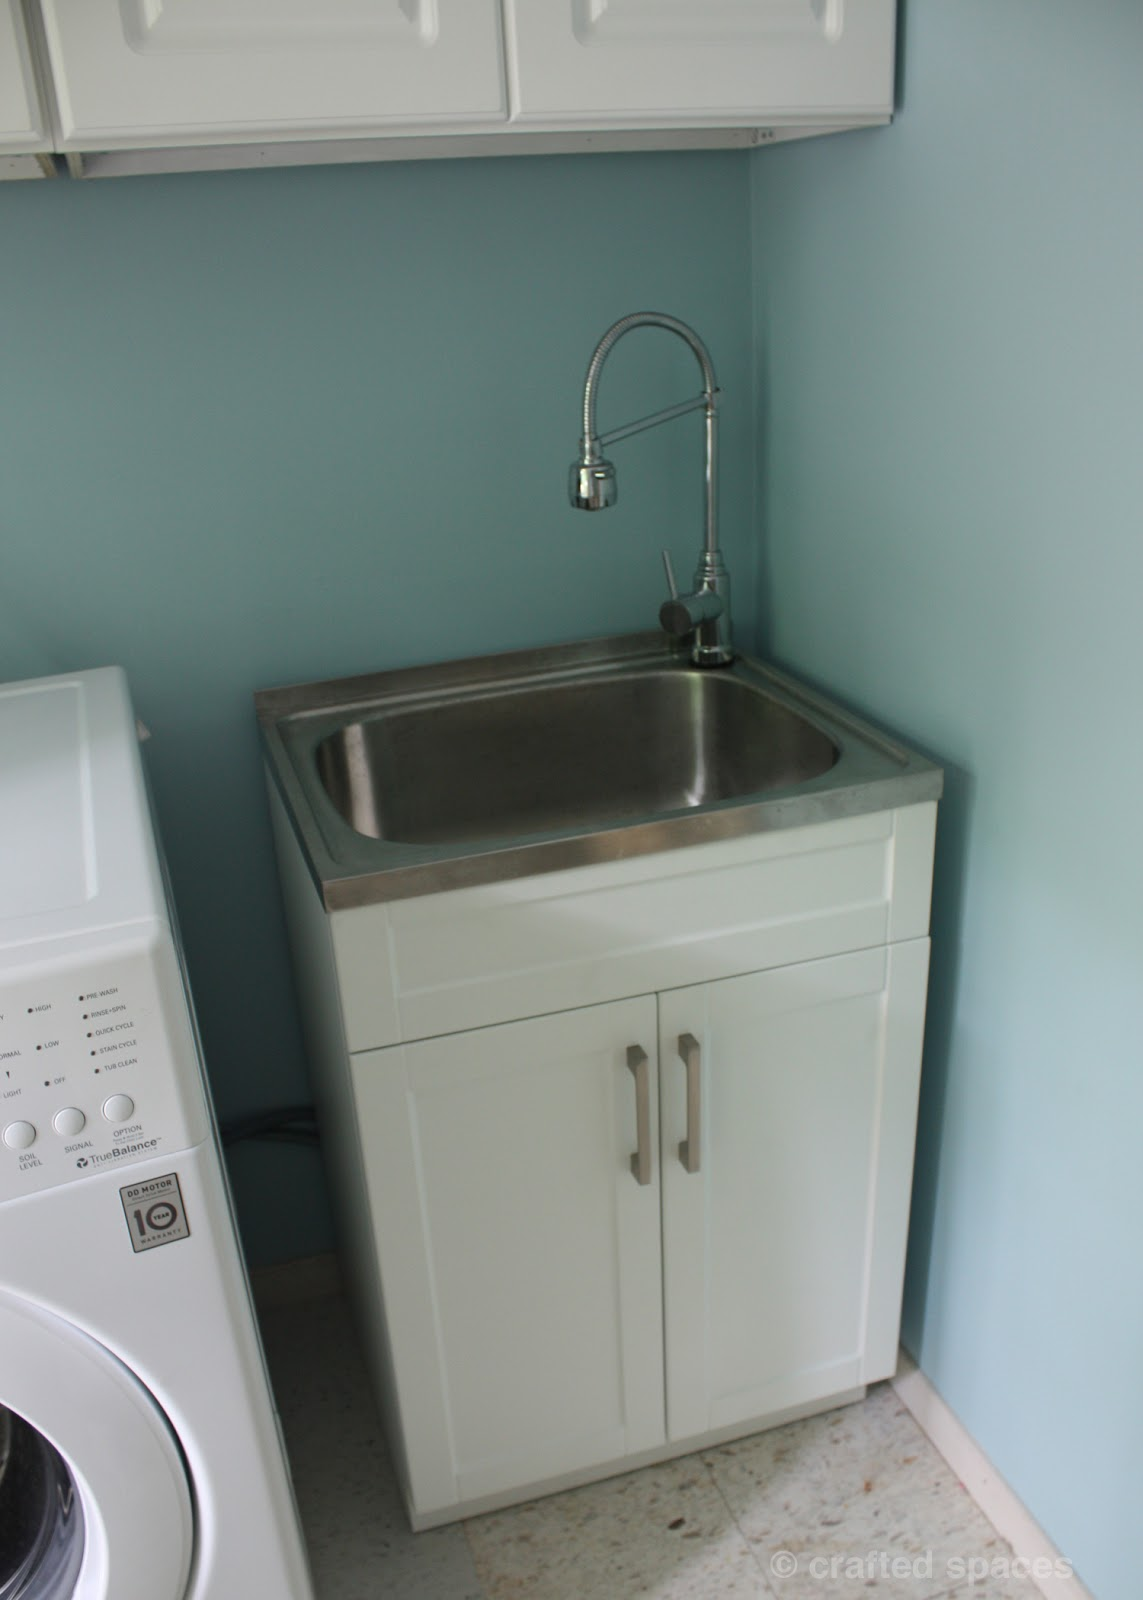 Laundry Room Sinks Stainless Steel : sink. It is deep enough to handle my projects and the stainless steel ...